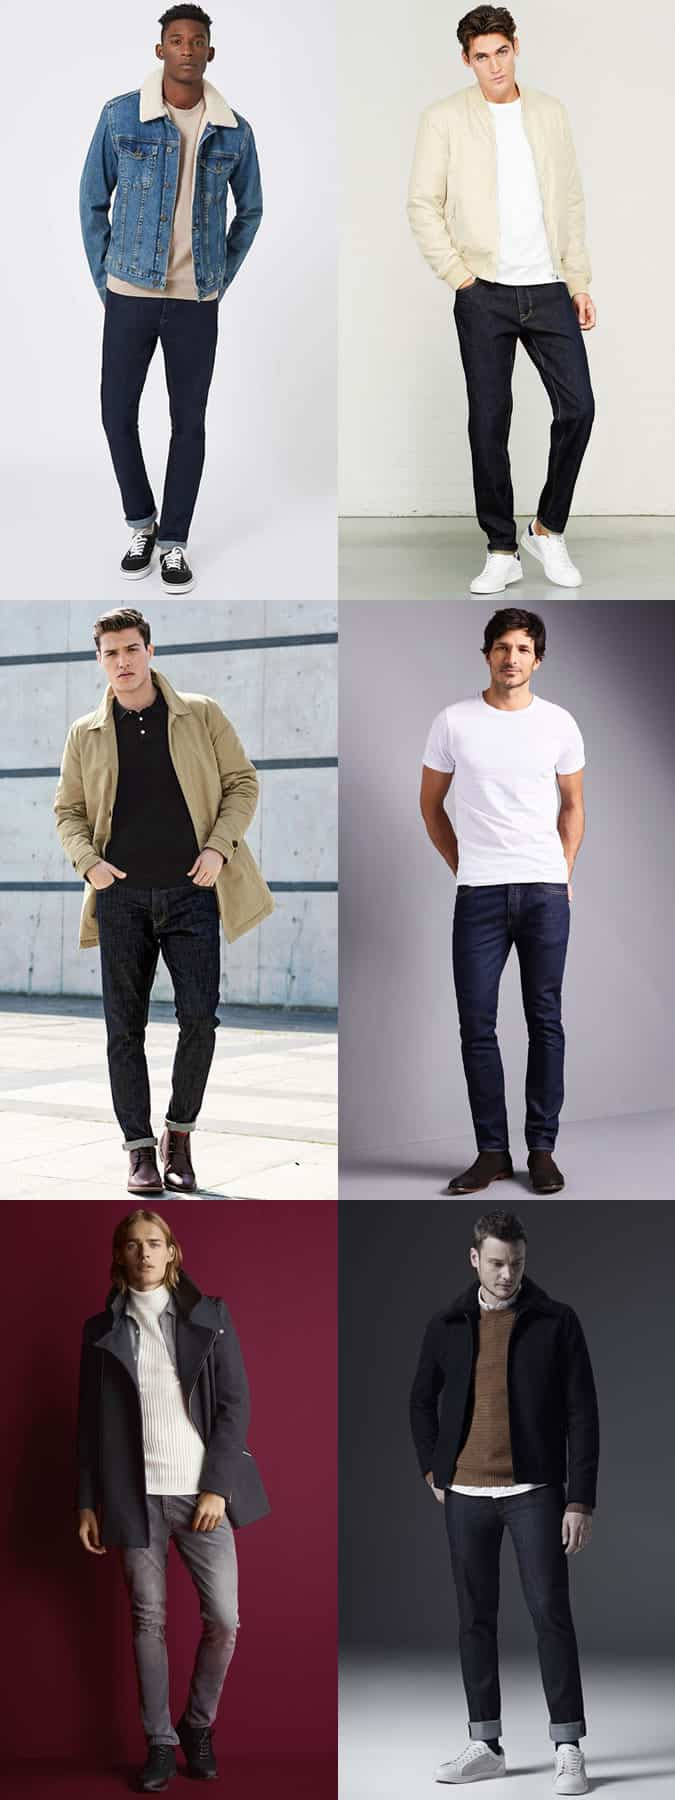 561525c2ab Men s Dark Wash Jeans Outfit Inspiration Lookbook